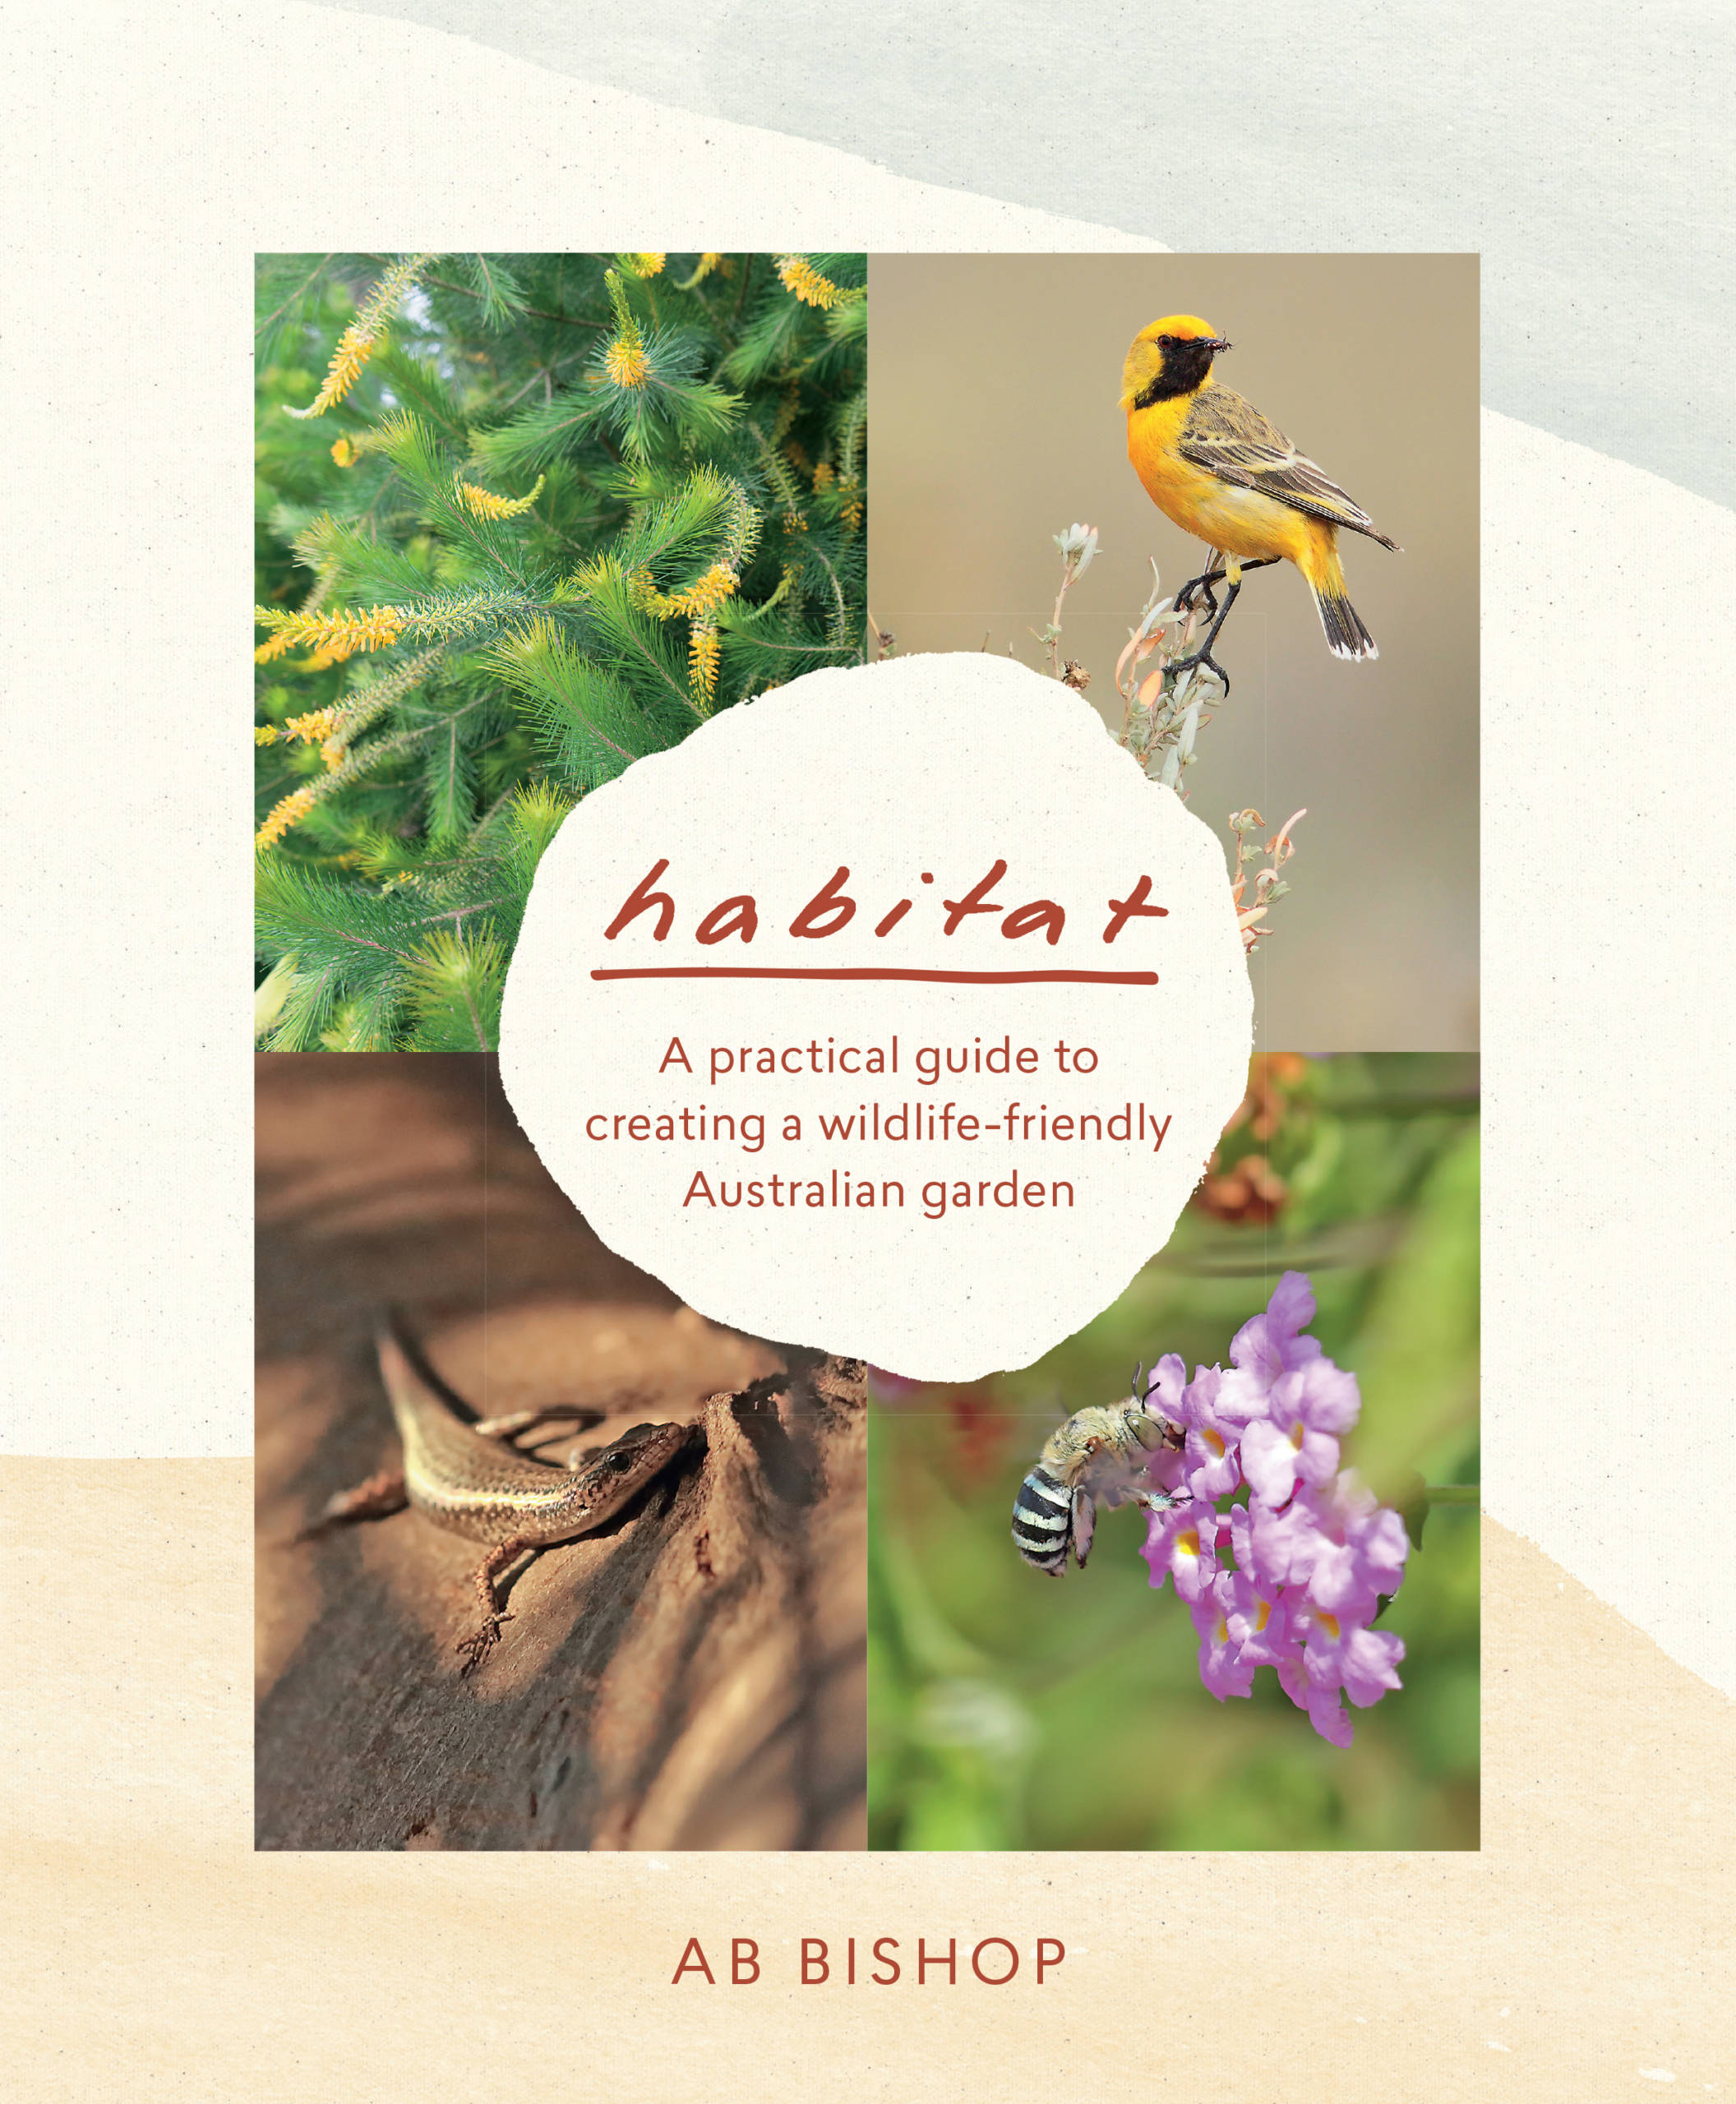 HabitatA practical guide to creating a wildlife-friend... by AB Bishop, ISBN: 9781760523473